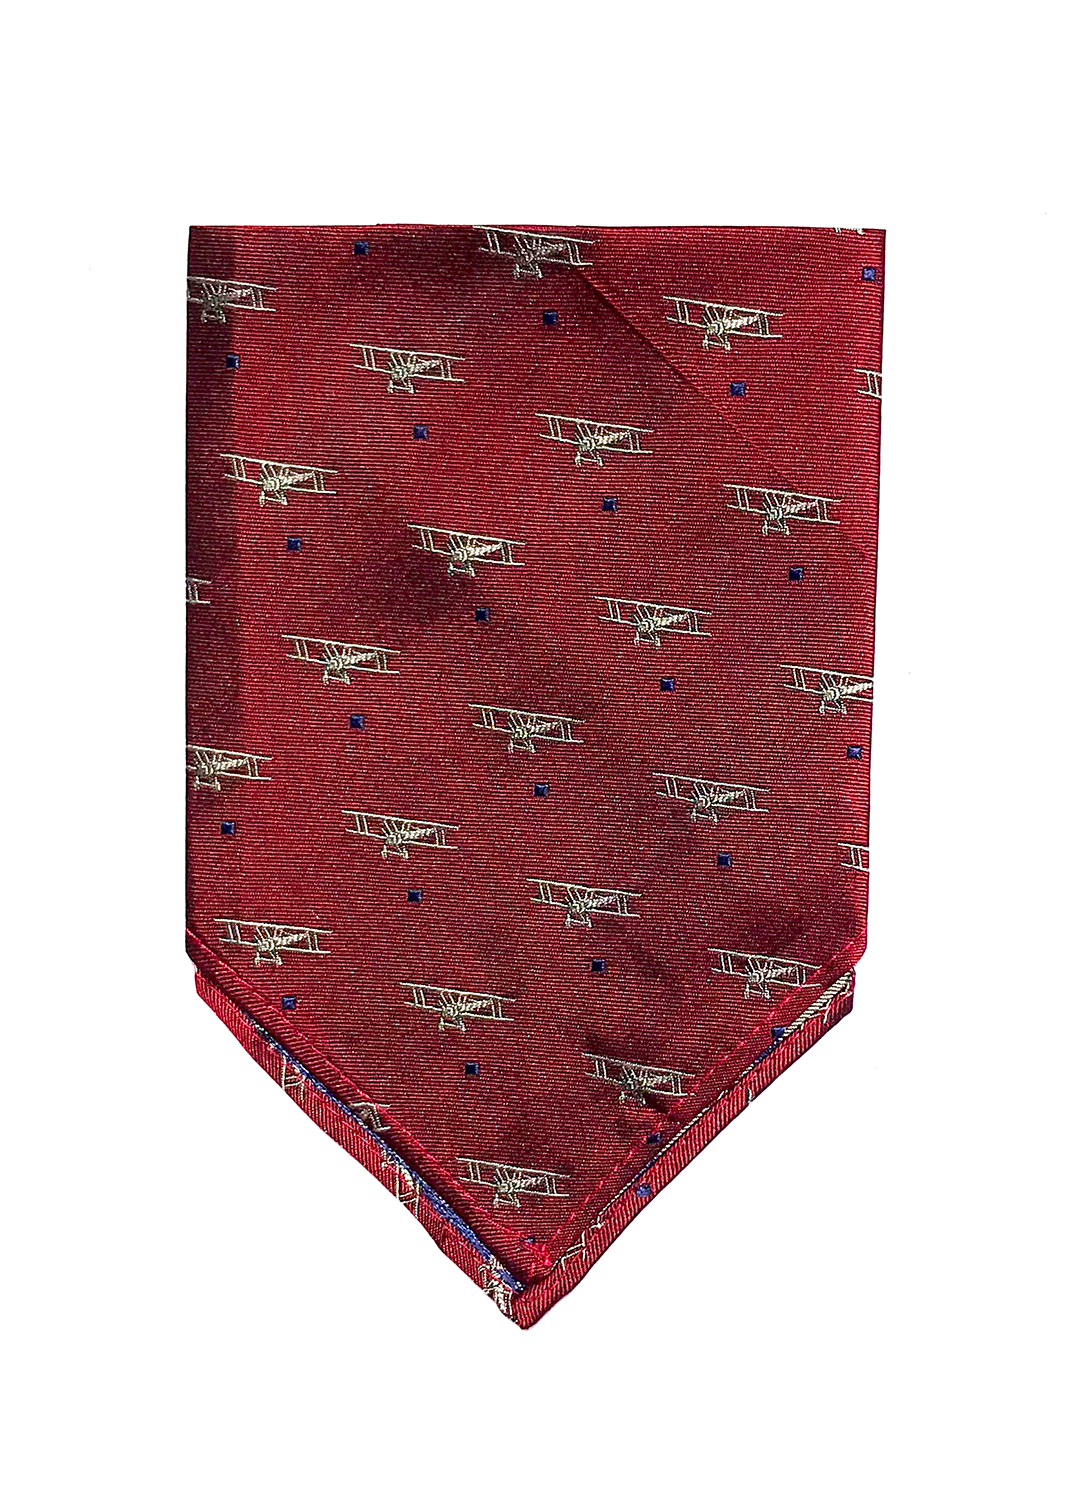 Biplane pocket square in ruby